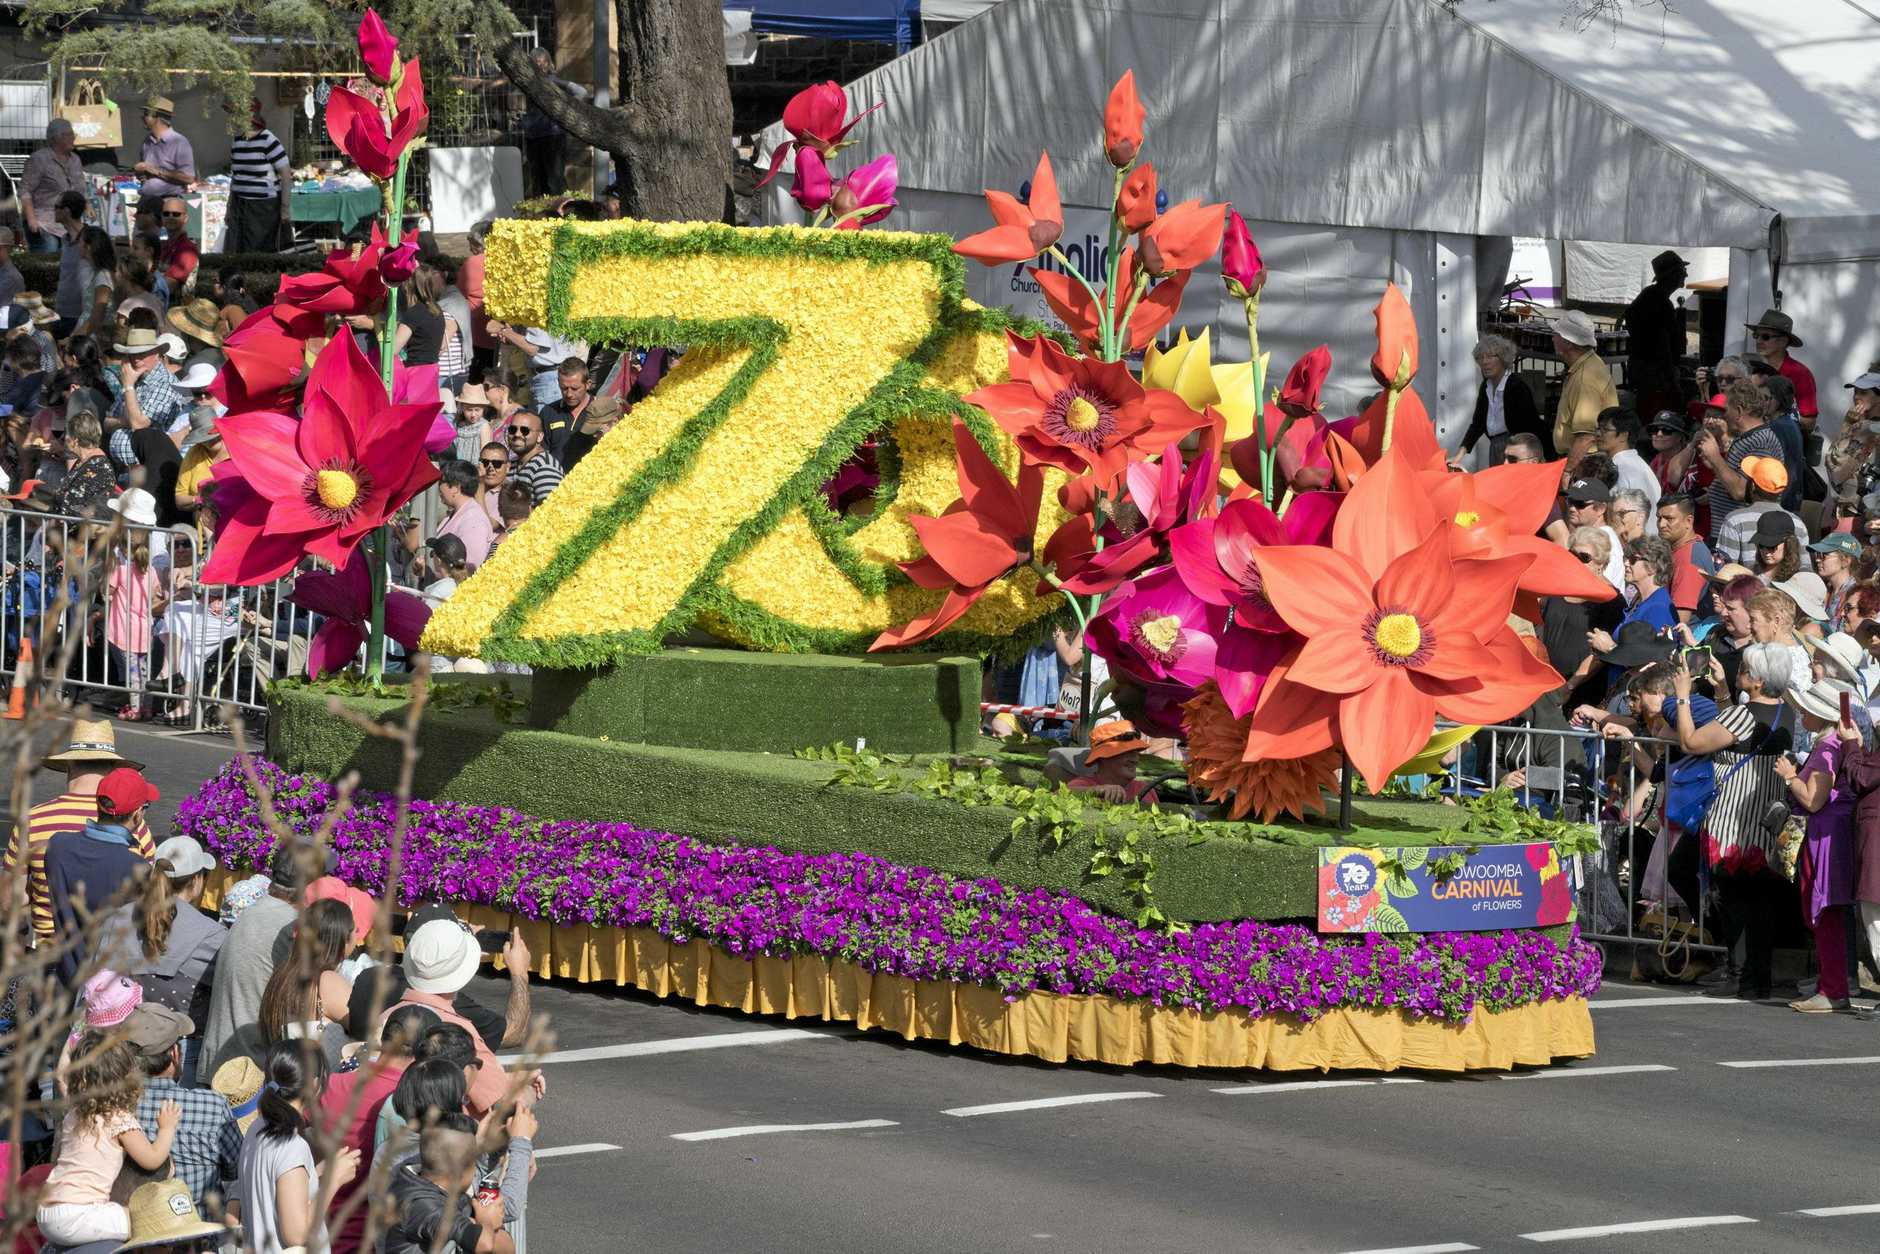 The parade celebrated the 70th year of the Carnival of Flowers.